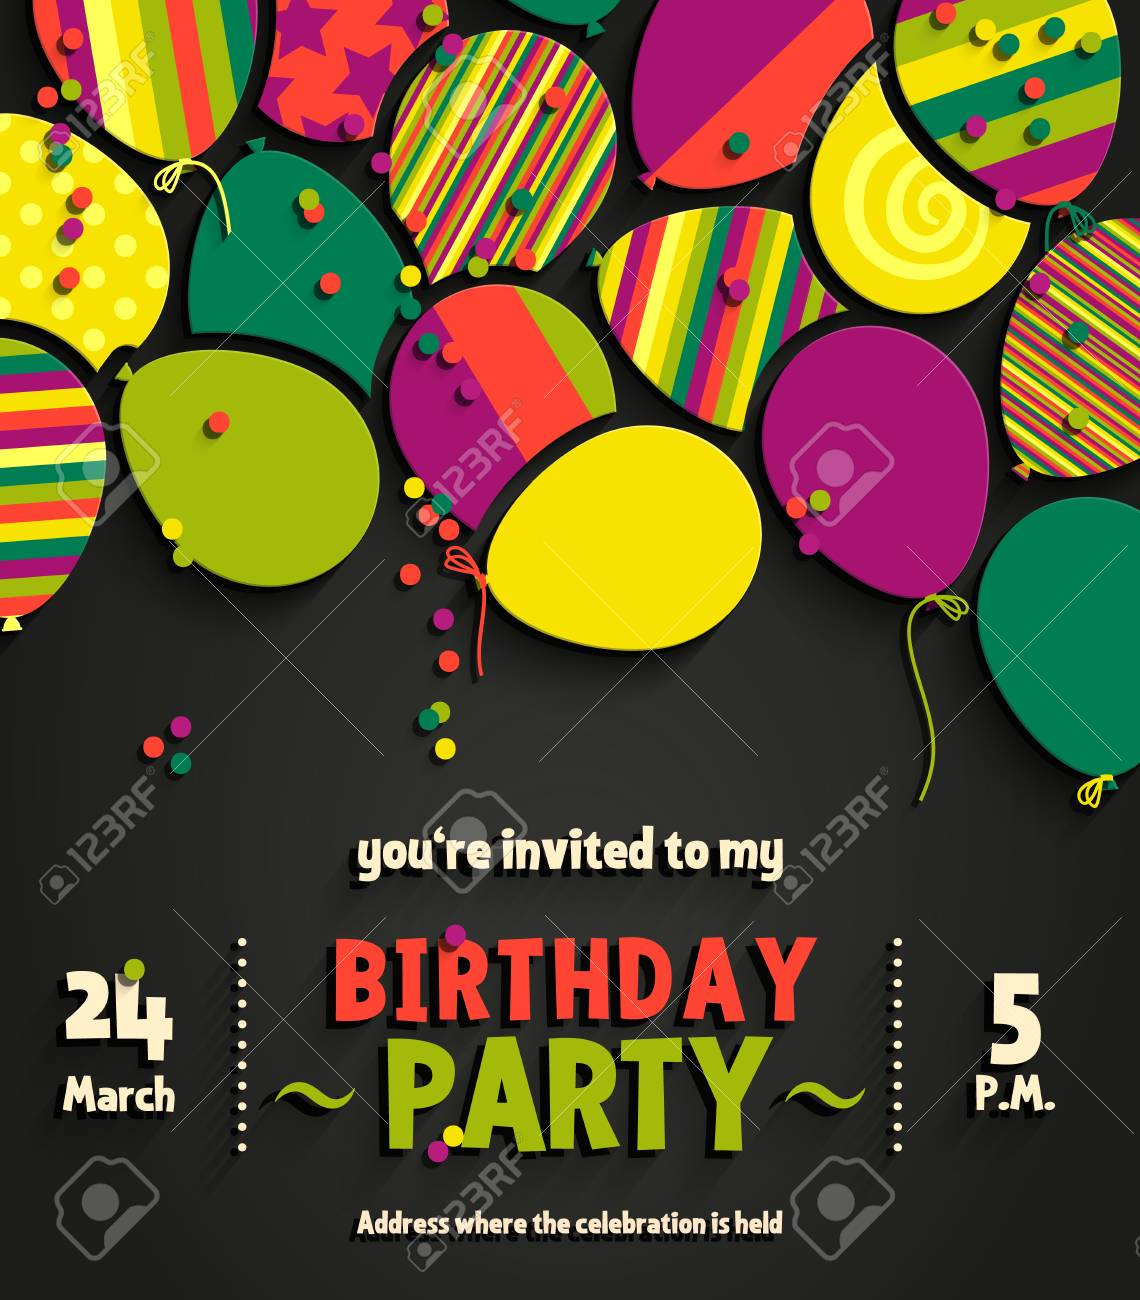 Birthday Party Invitation Card With Colorful Flat Balloons